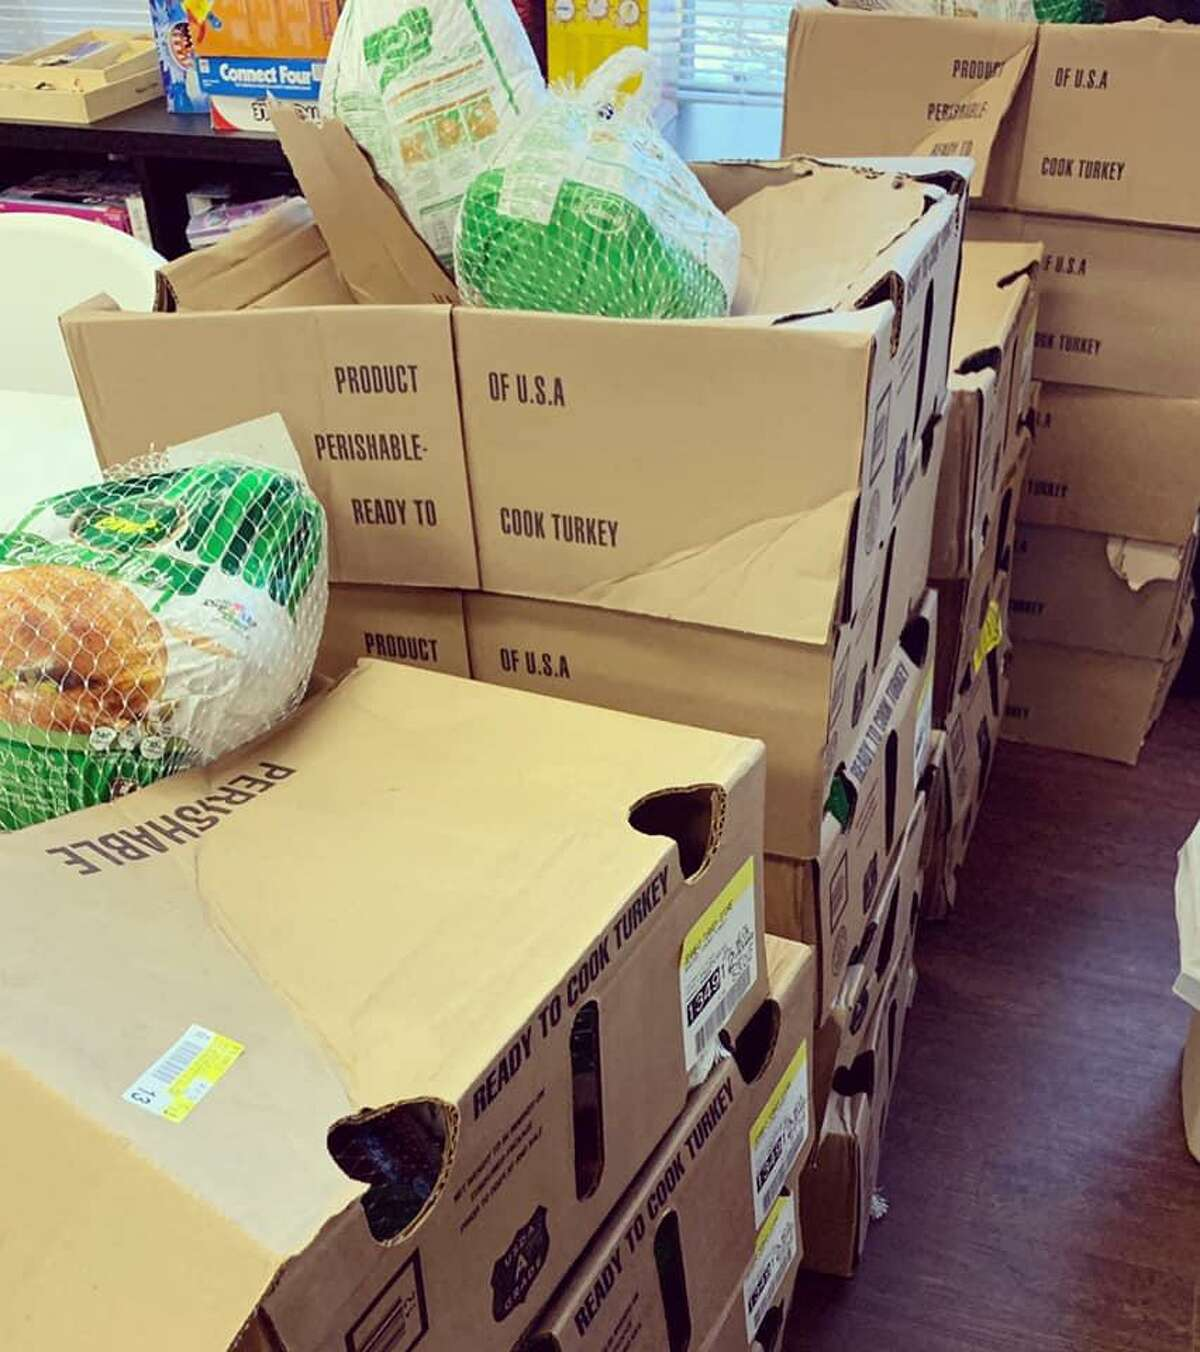 Cy-Hope volunteers have worked to distribute food to families in need, receive donations from the community and organize the shipments for future use.